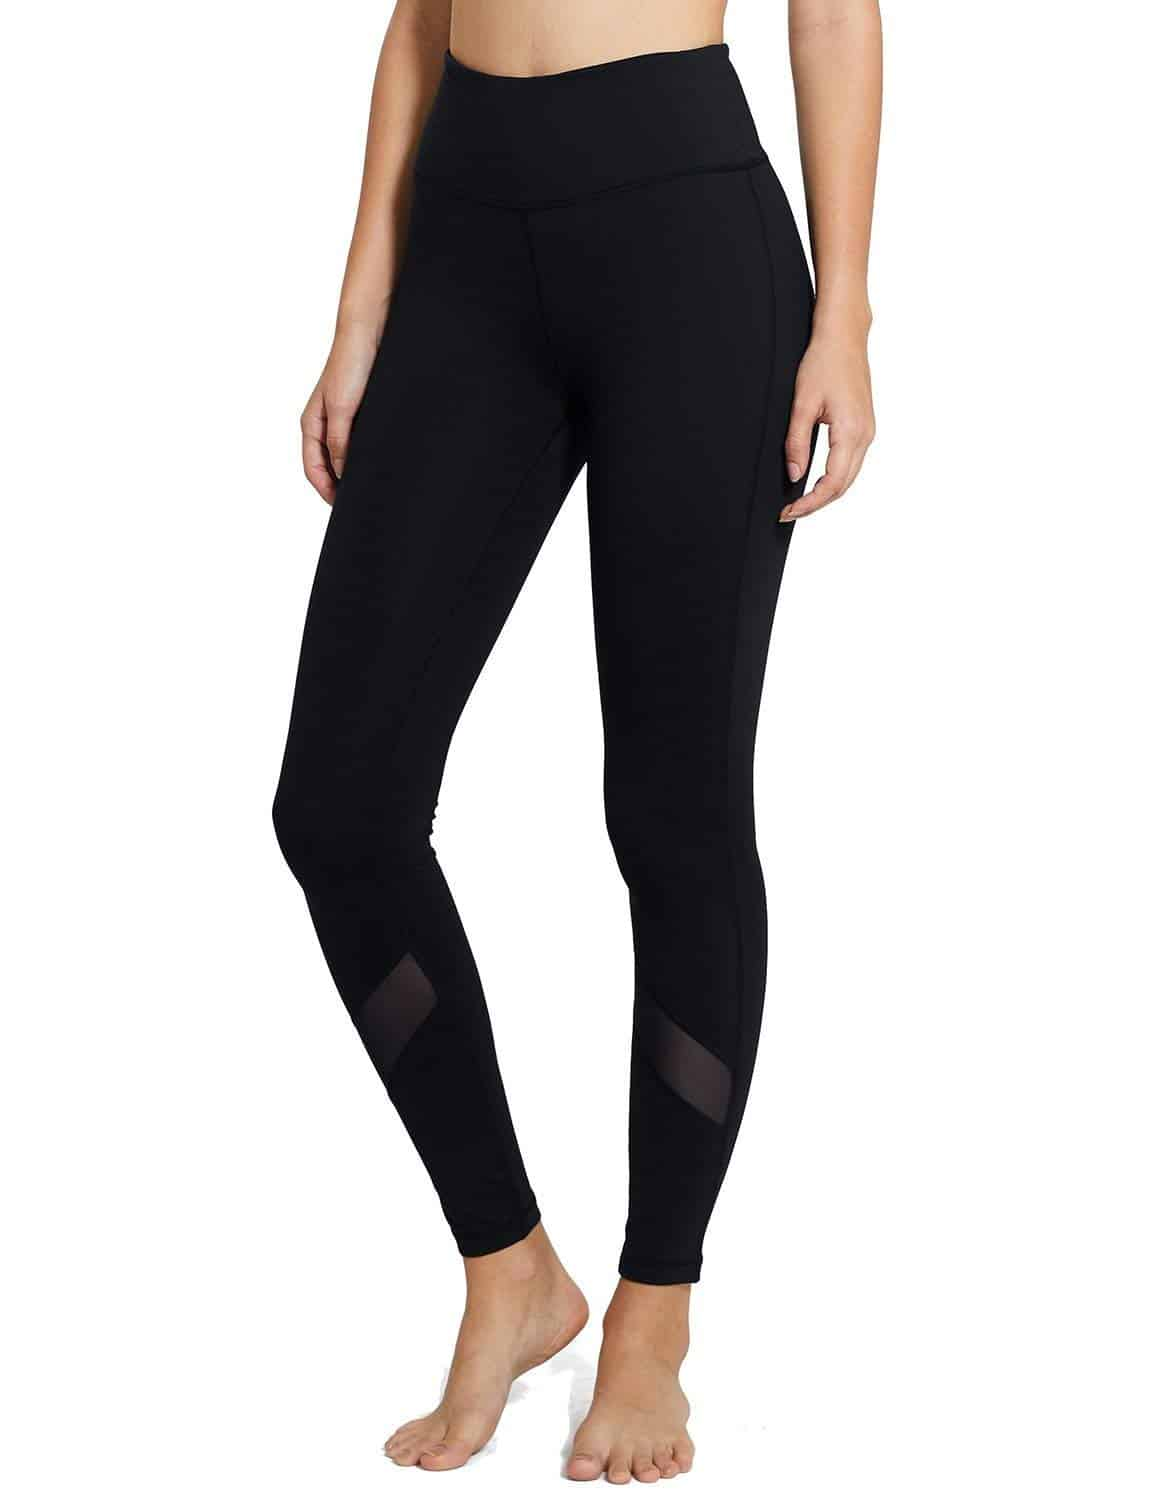 Baleaf Women's High Waist Yoga Pants.